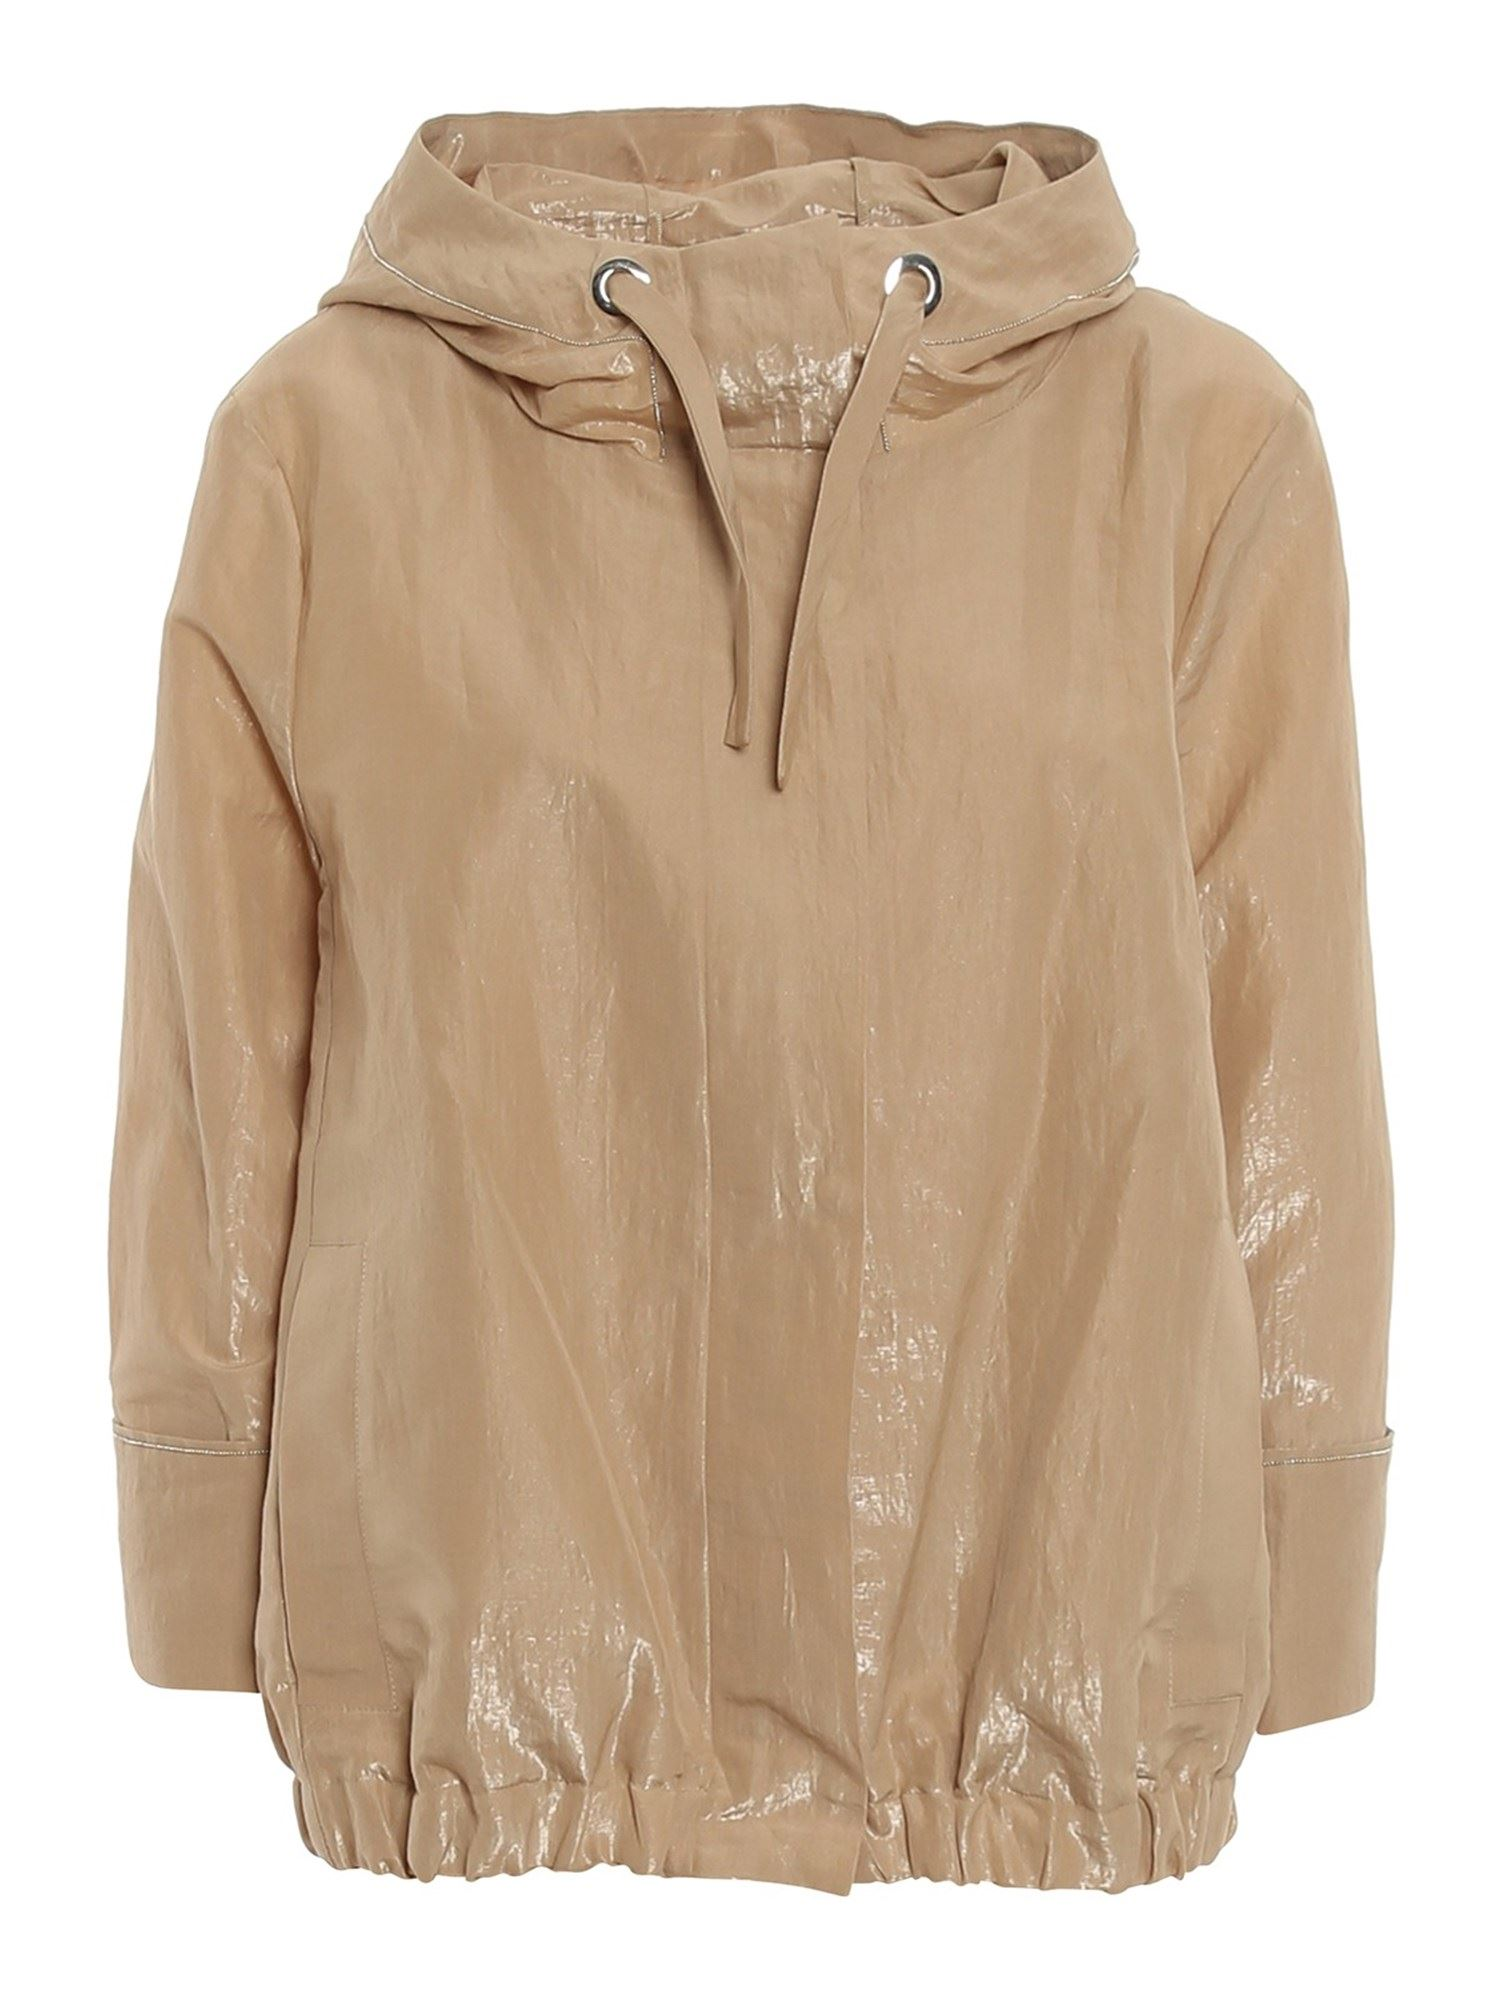 Peserico BEAD DETAILED HOODED JACKET IN BEIGE